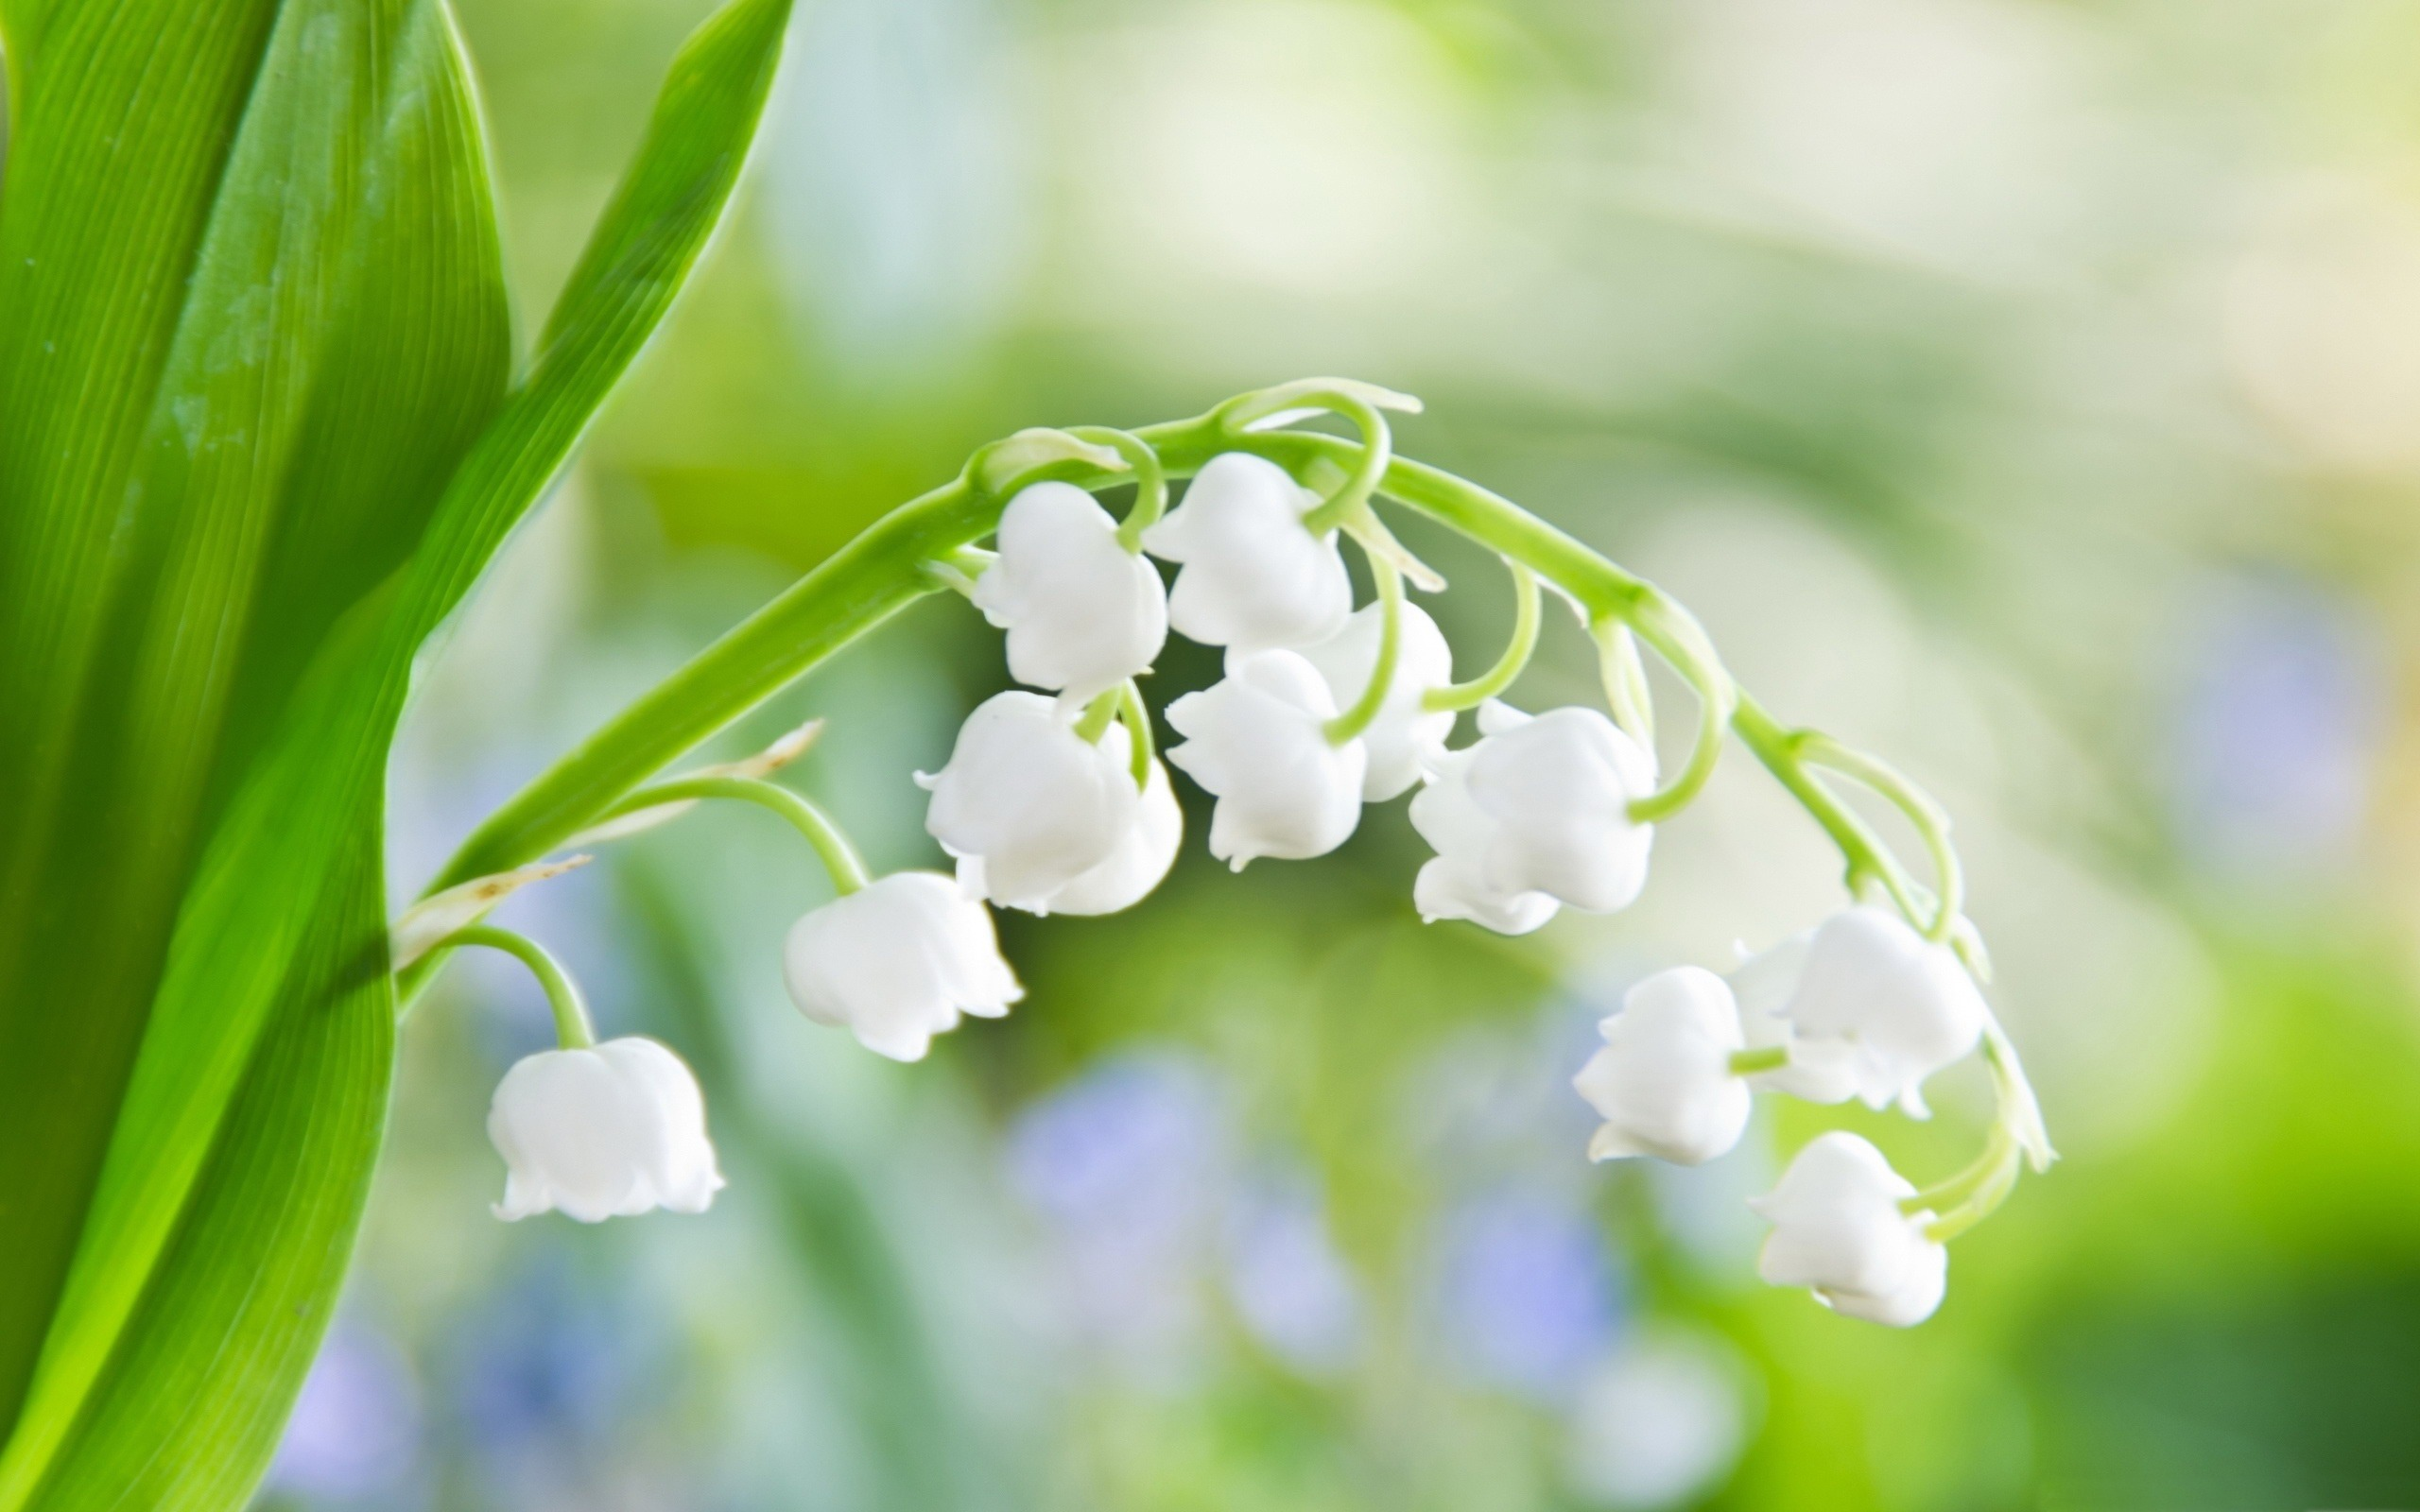 White lily of the valley flowers photography wallpaper 2560x1600 white lily of the valley flowers photography wallpaper 2560x1600 wallpaper download izmirmasajfo Gallery